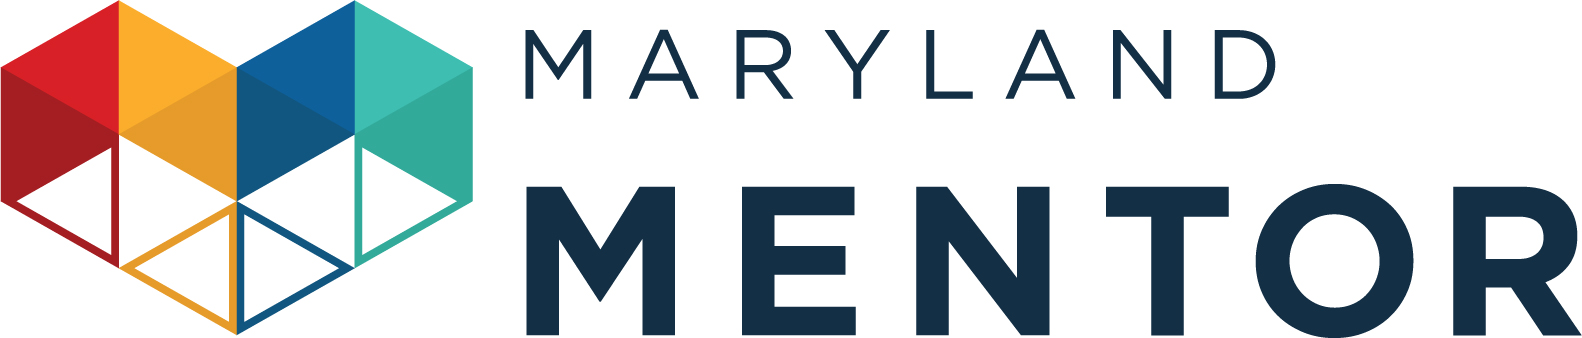 Maryland-Mentor-Logo